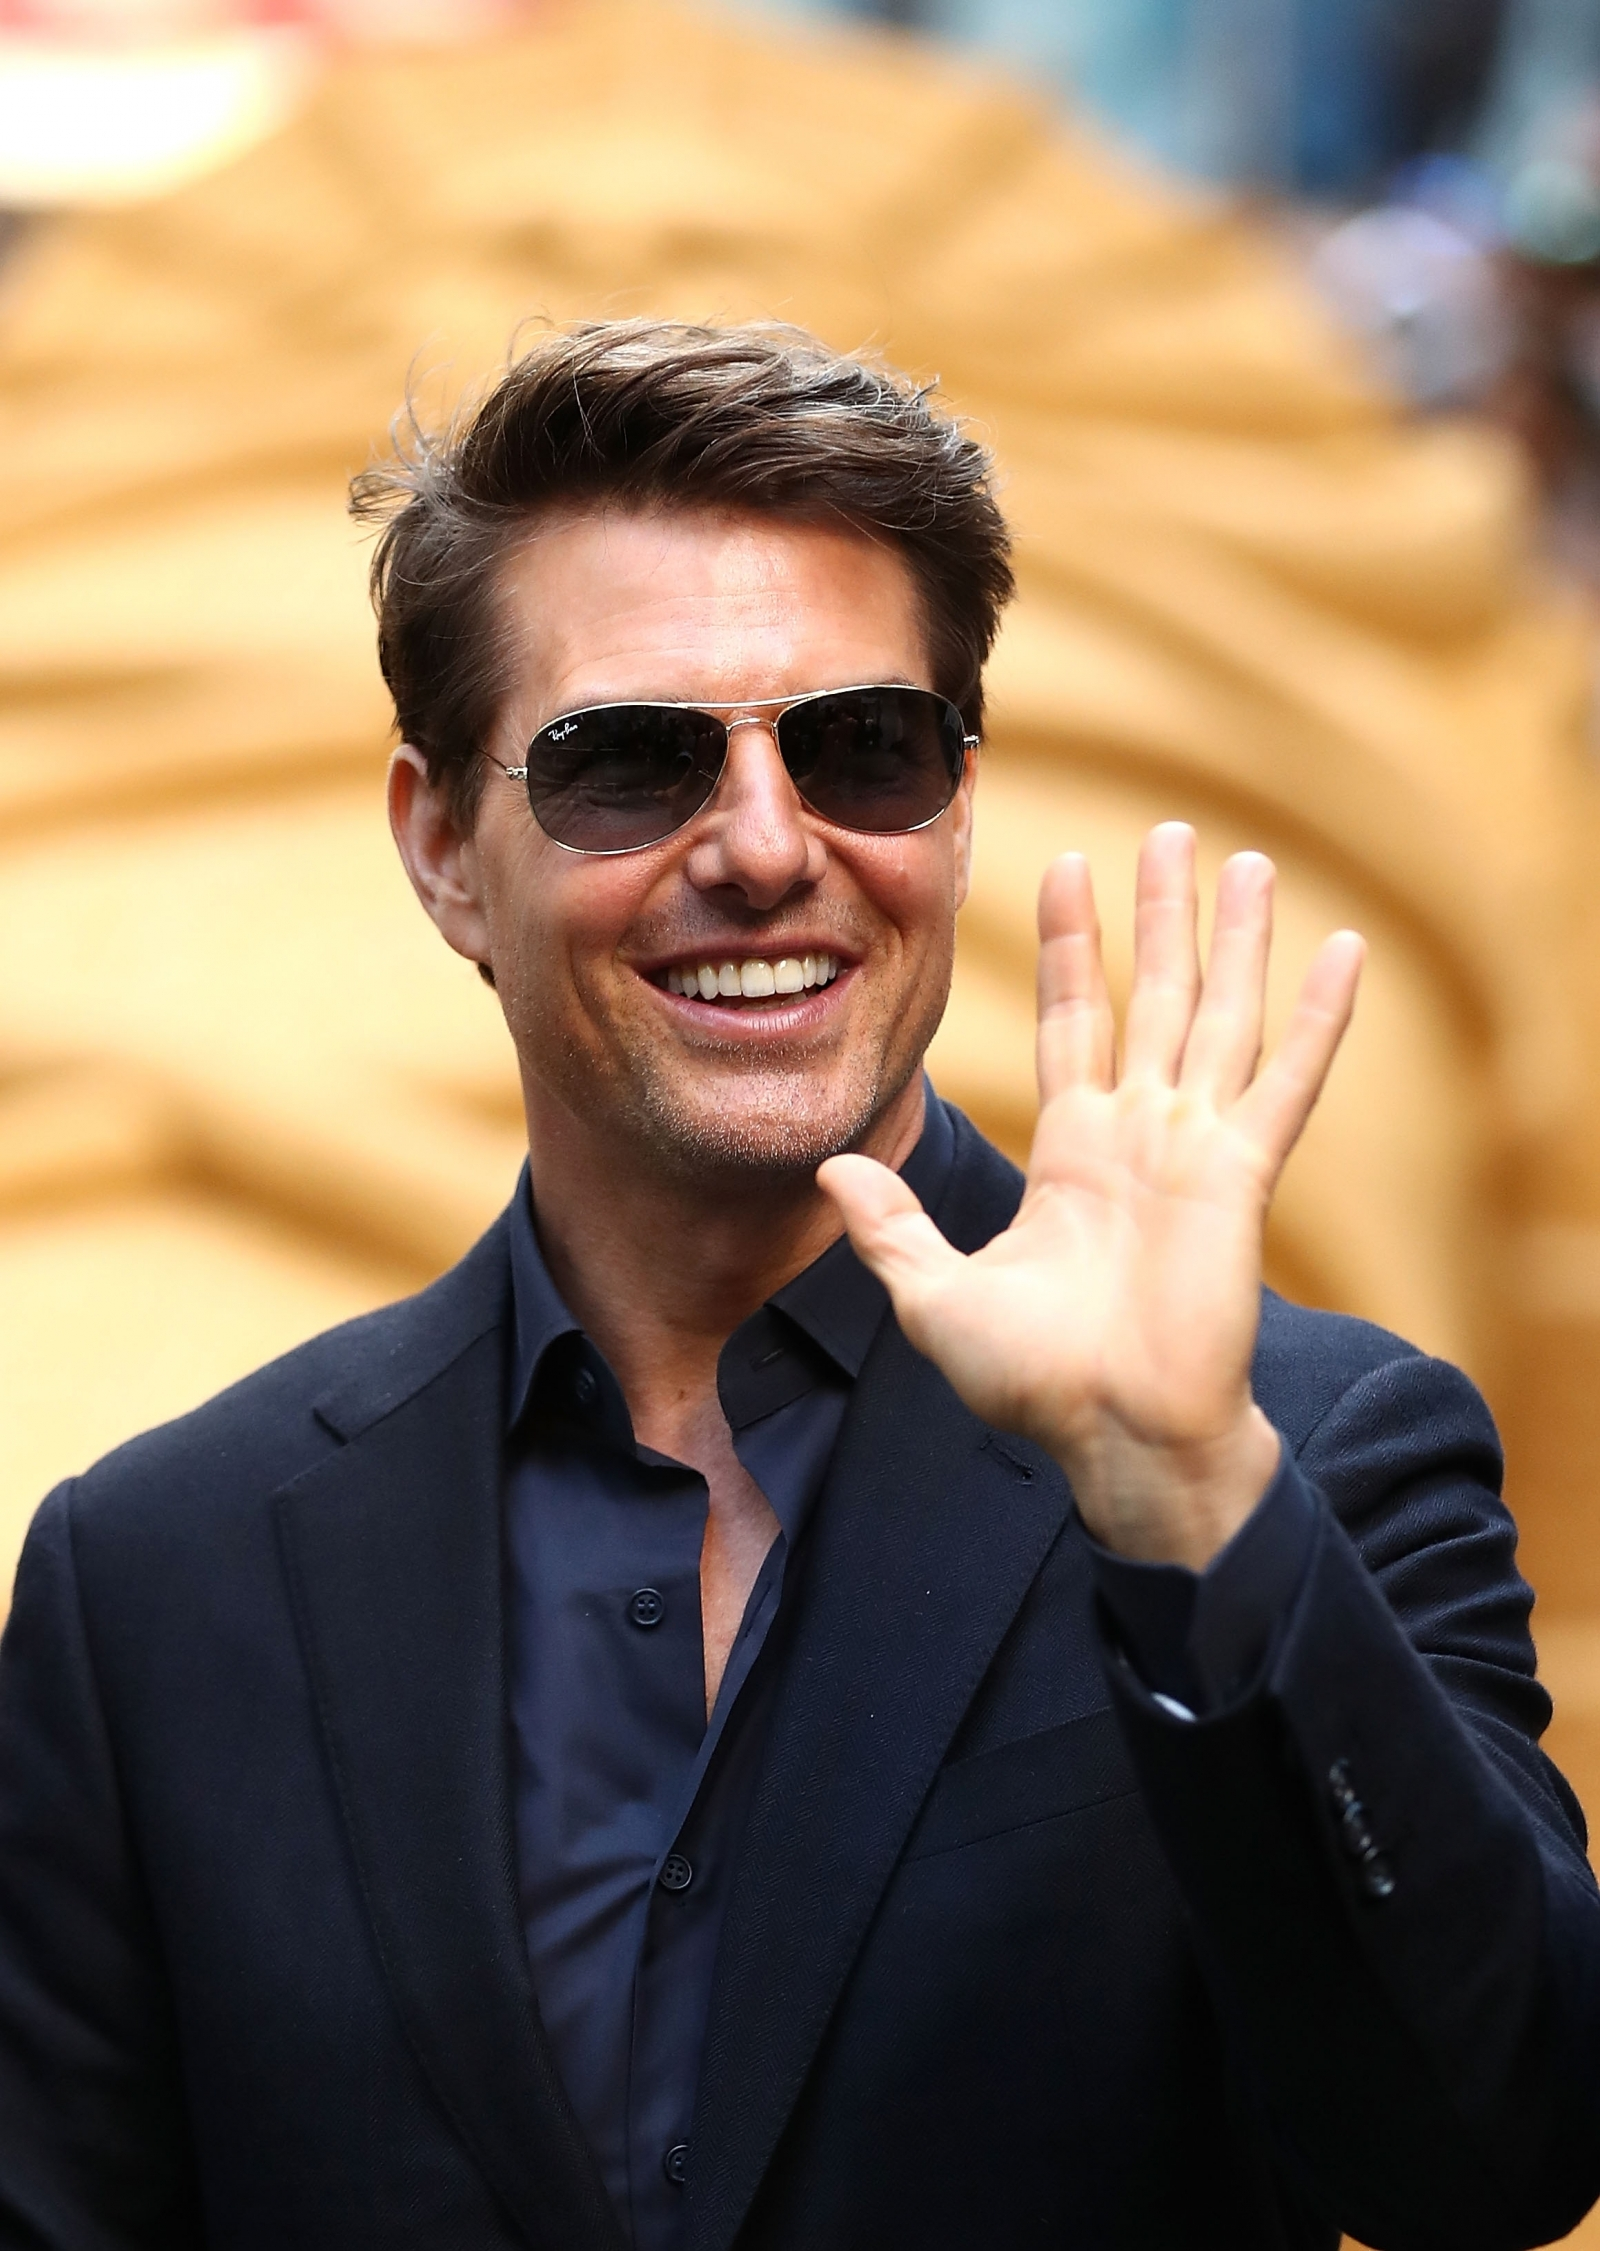 Tom Cruise's 'fake butt' photo goes viral driving Twitter ... Tom Cruise